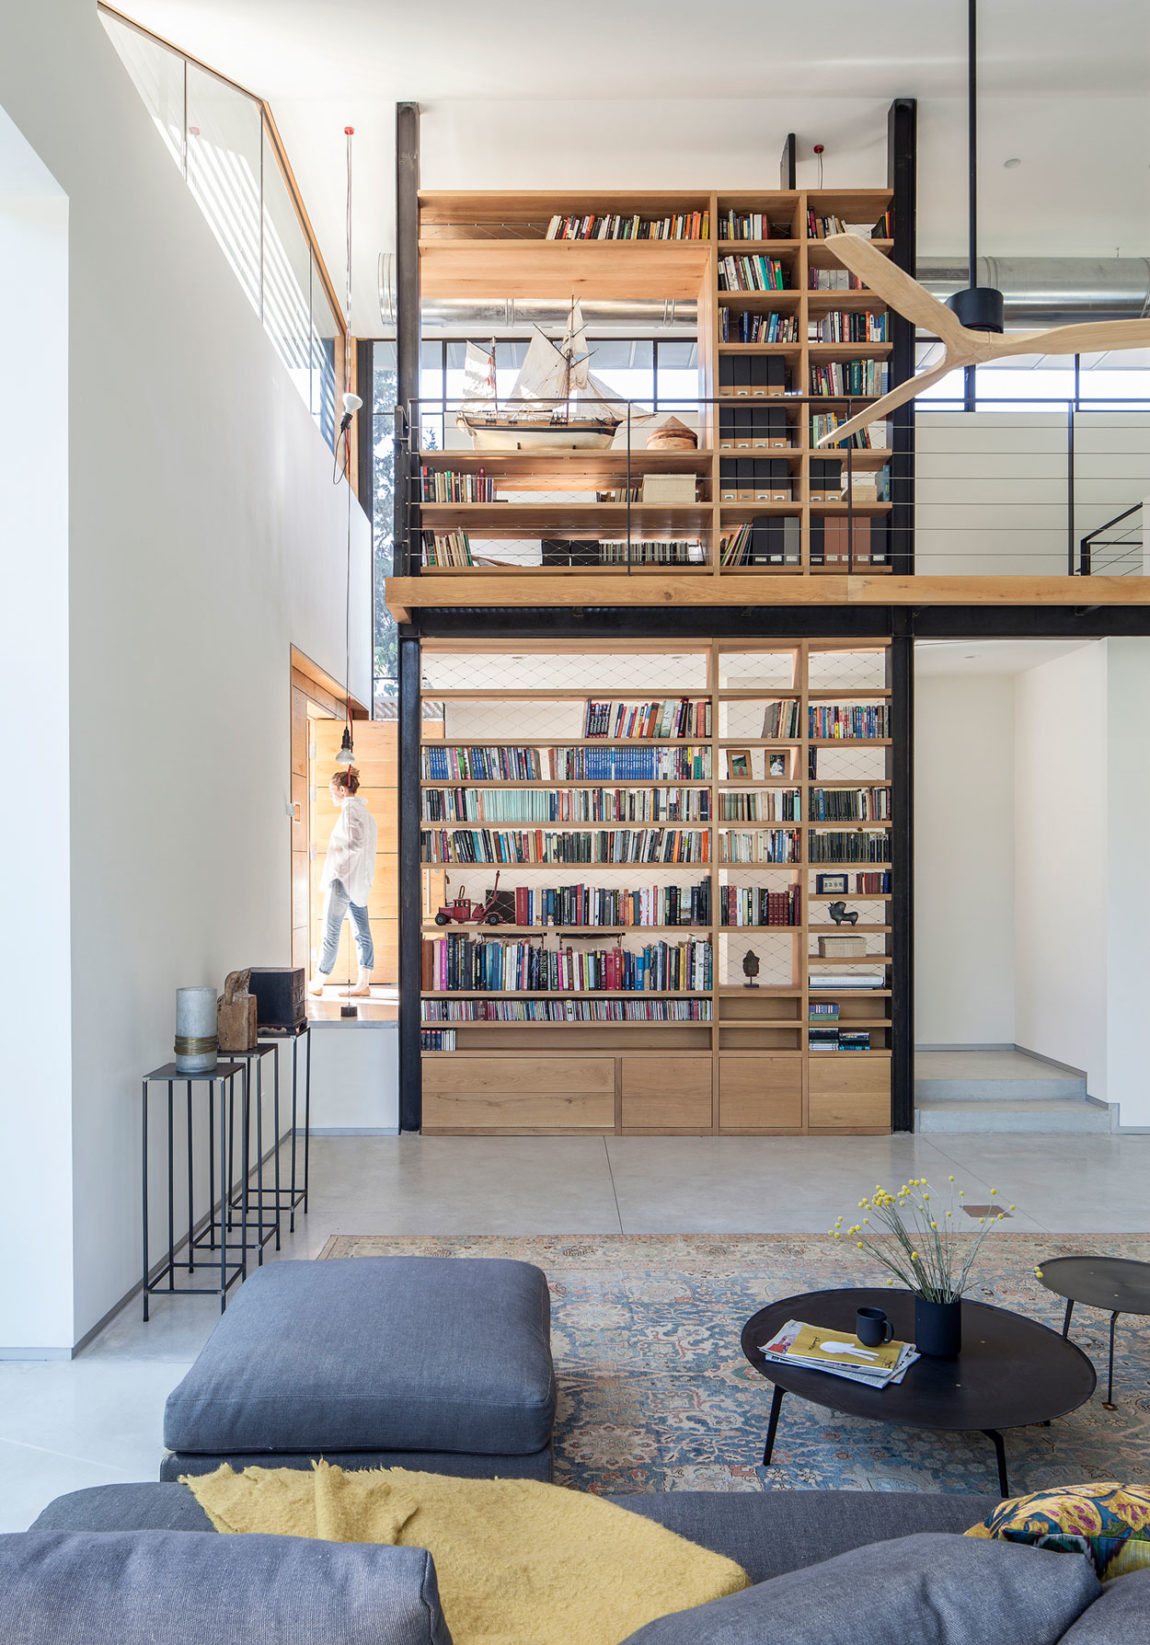 CY Residence by Kedem Shinar Design & Architecture (14)